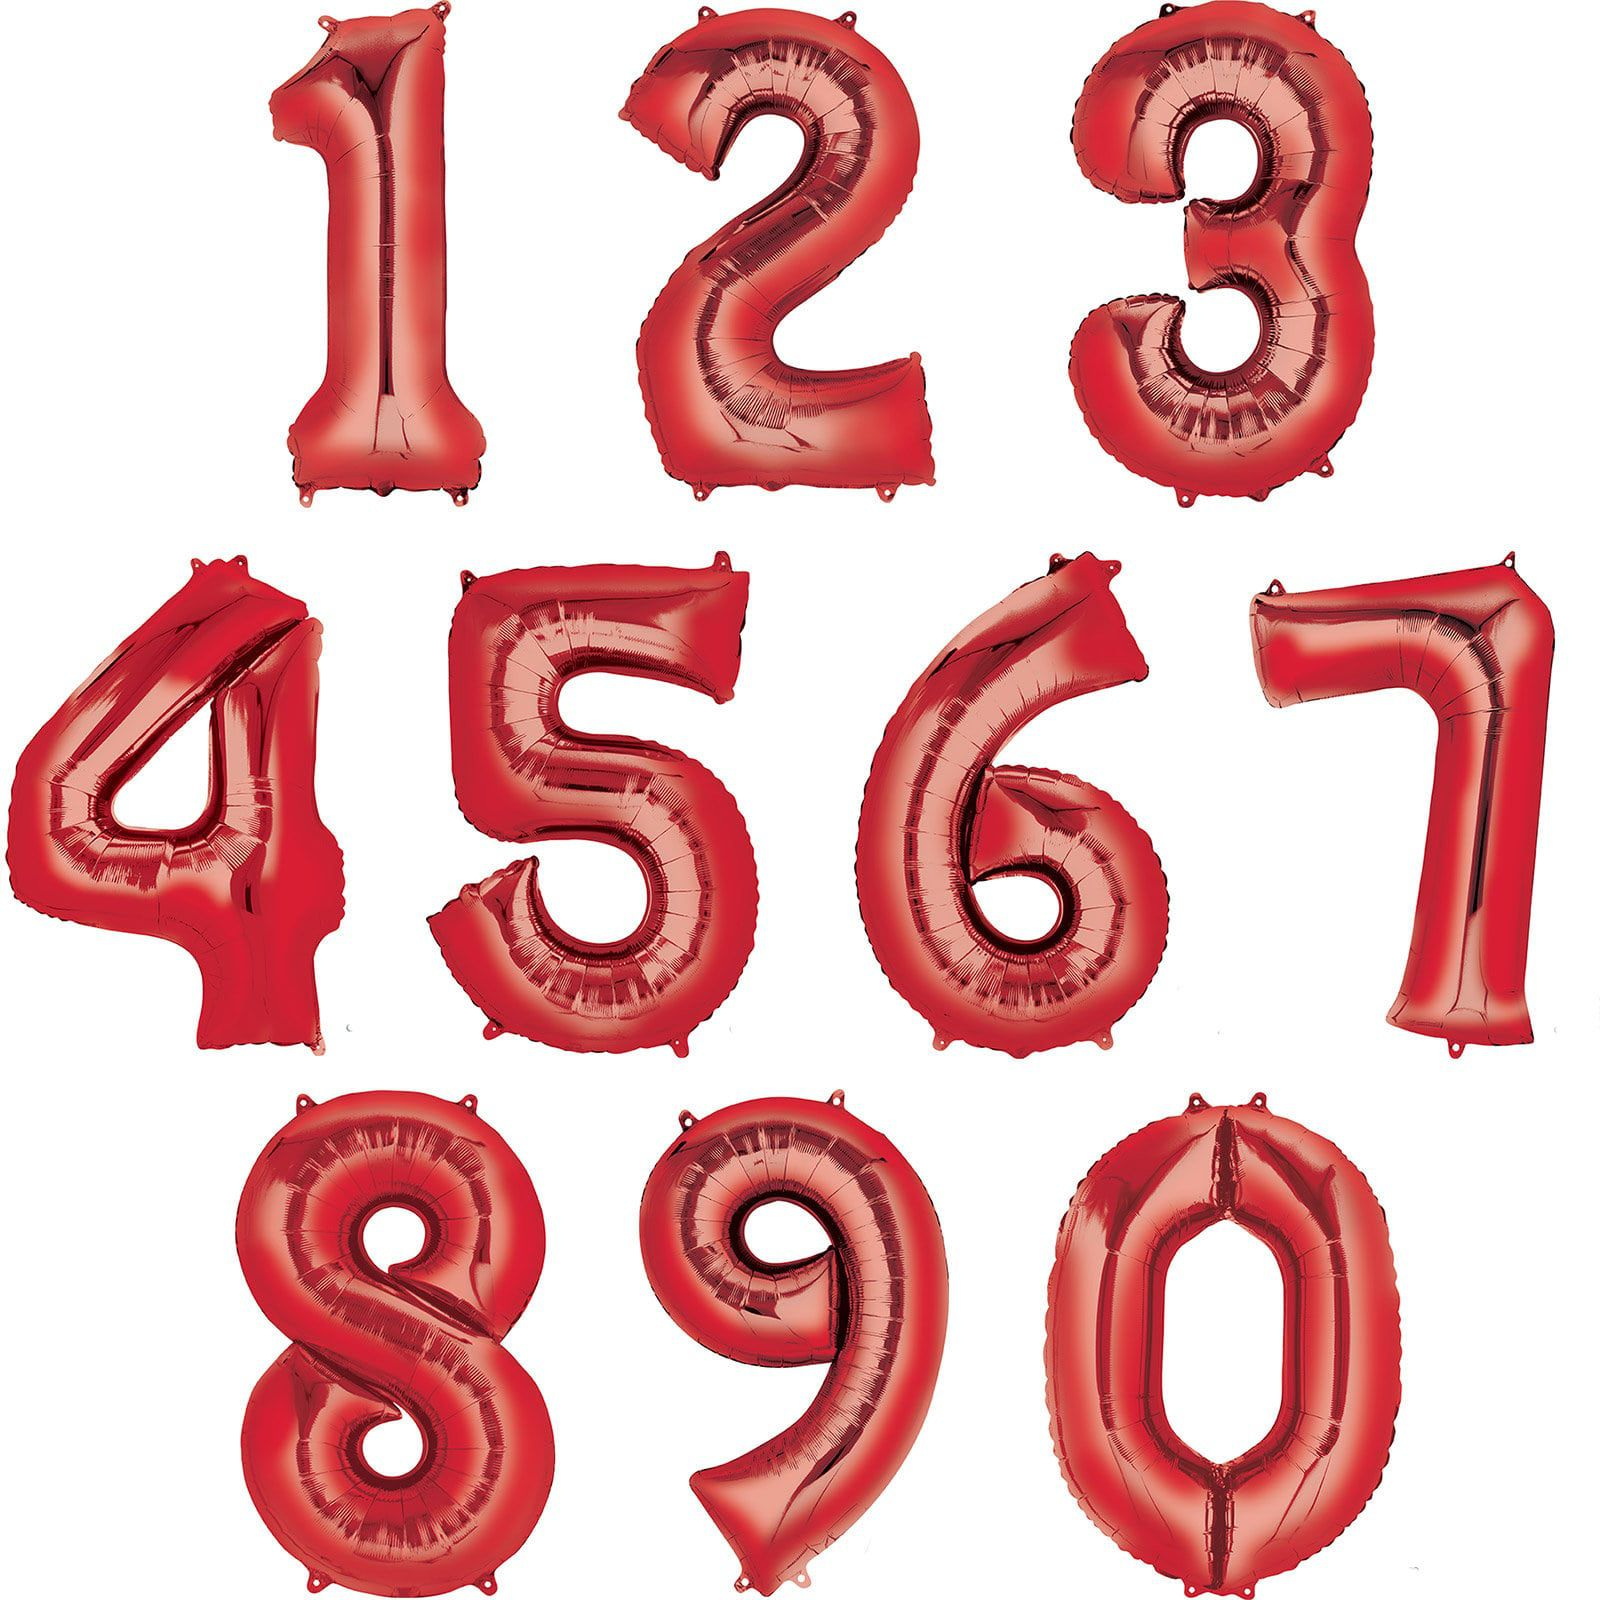 35 U0026quot  Number 0 Shaped Foil Balloon - Red